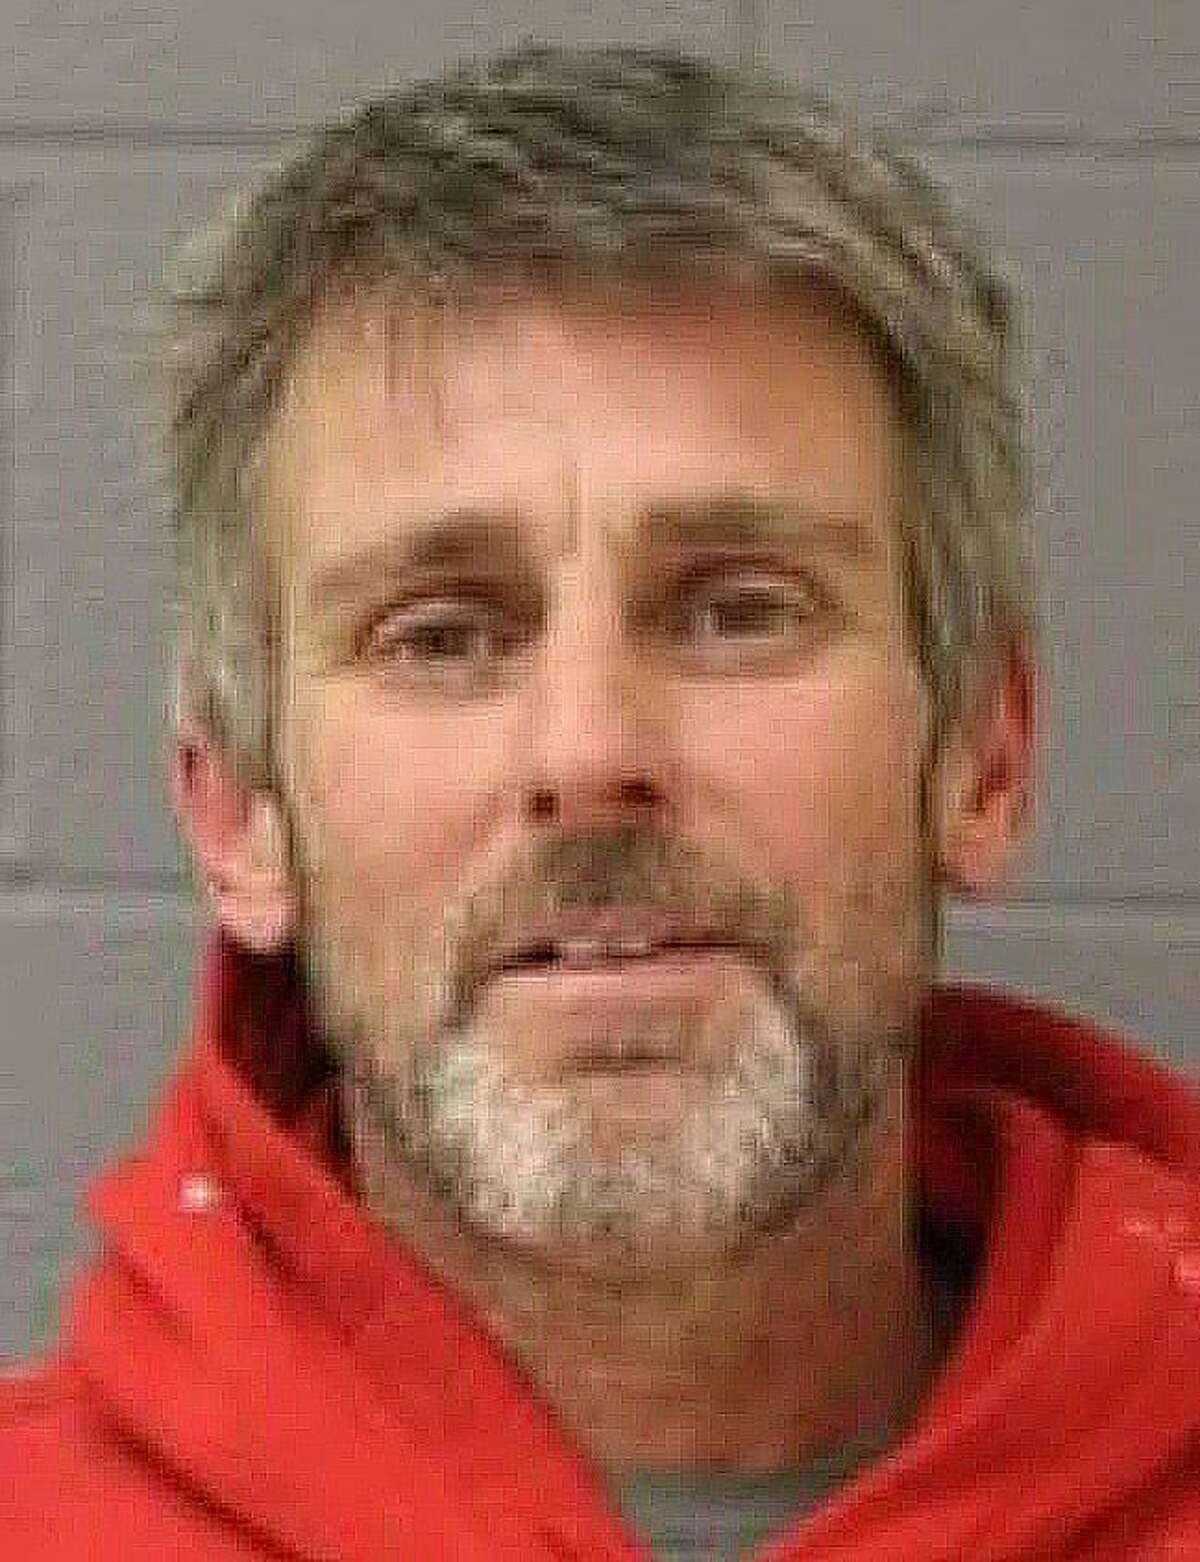 John Marlin, 53, of Shelton, was charged with burglary, larceny and criminal mischief in connection with the theft of copper from a Fairfield Hills building on Wednesday, March 13, 2019. Also charged was John Rodia, 49, also of Shelton.